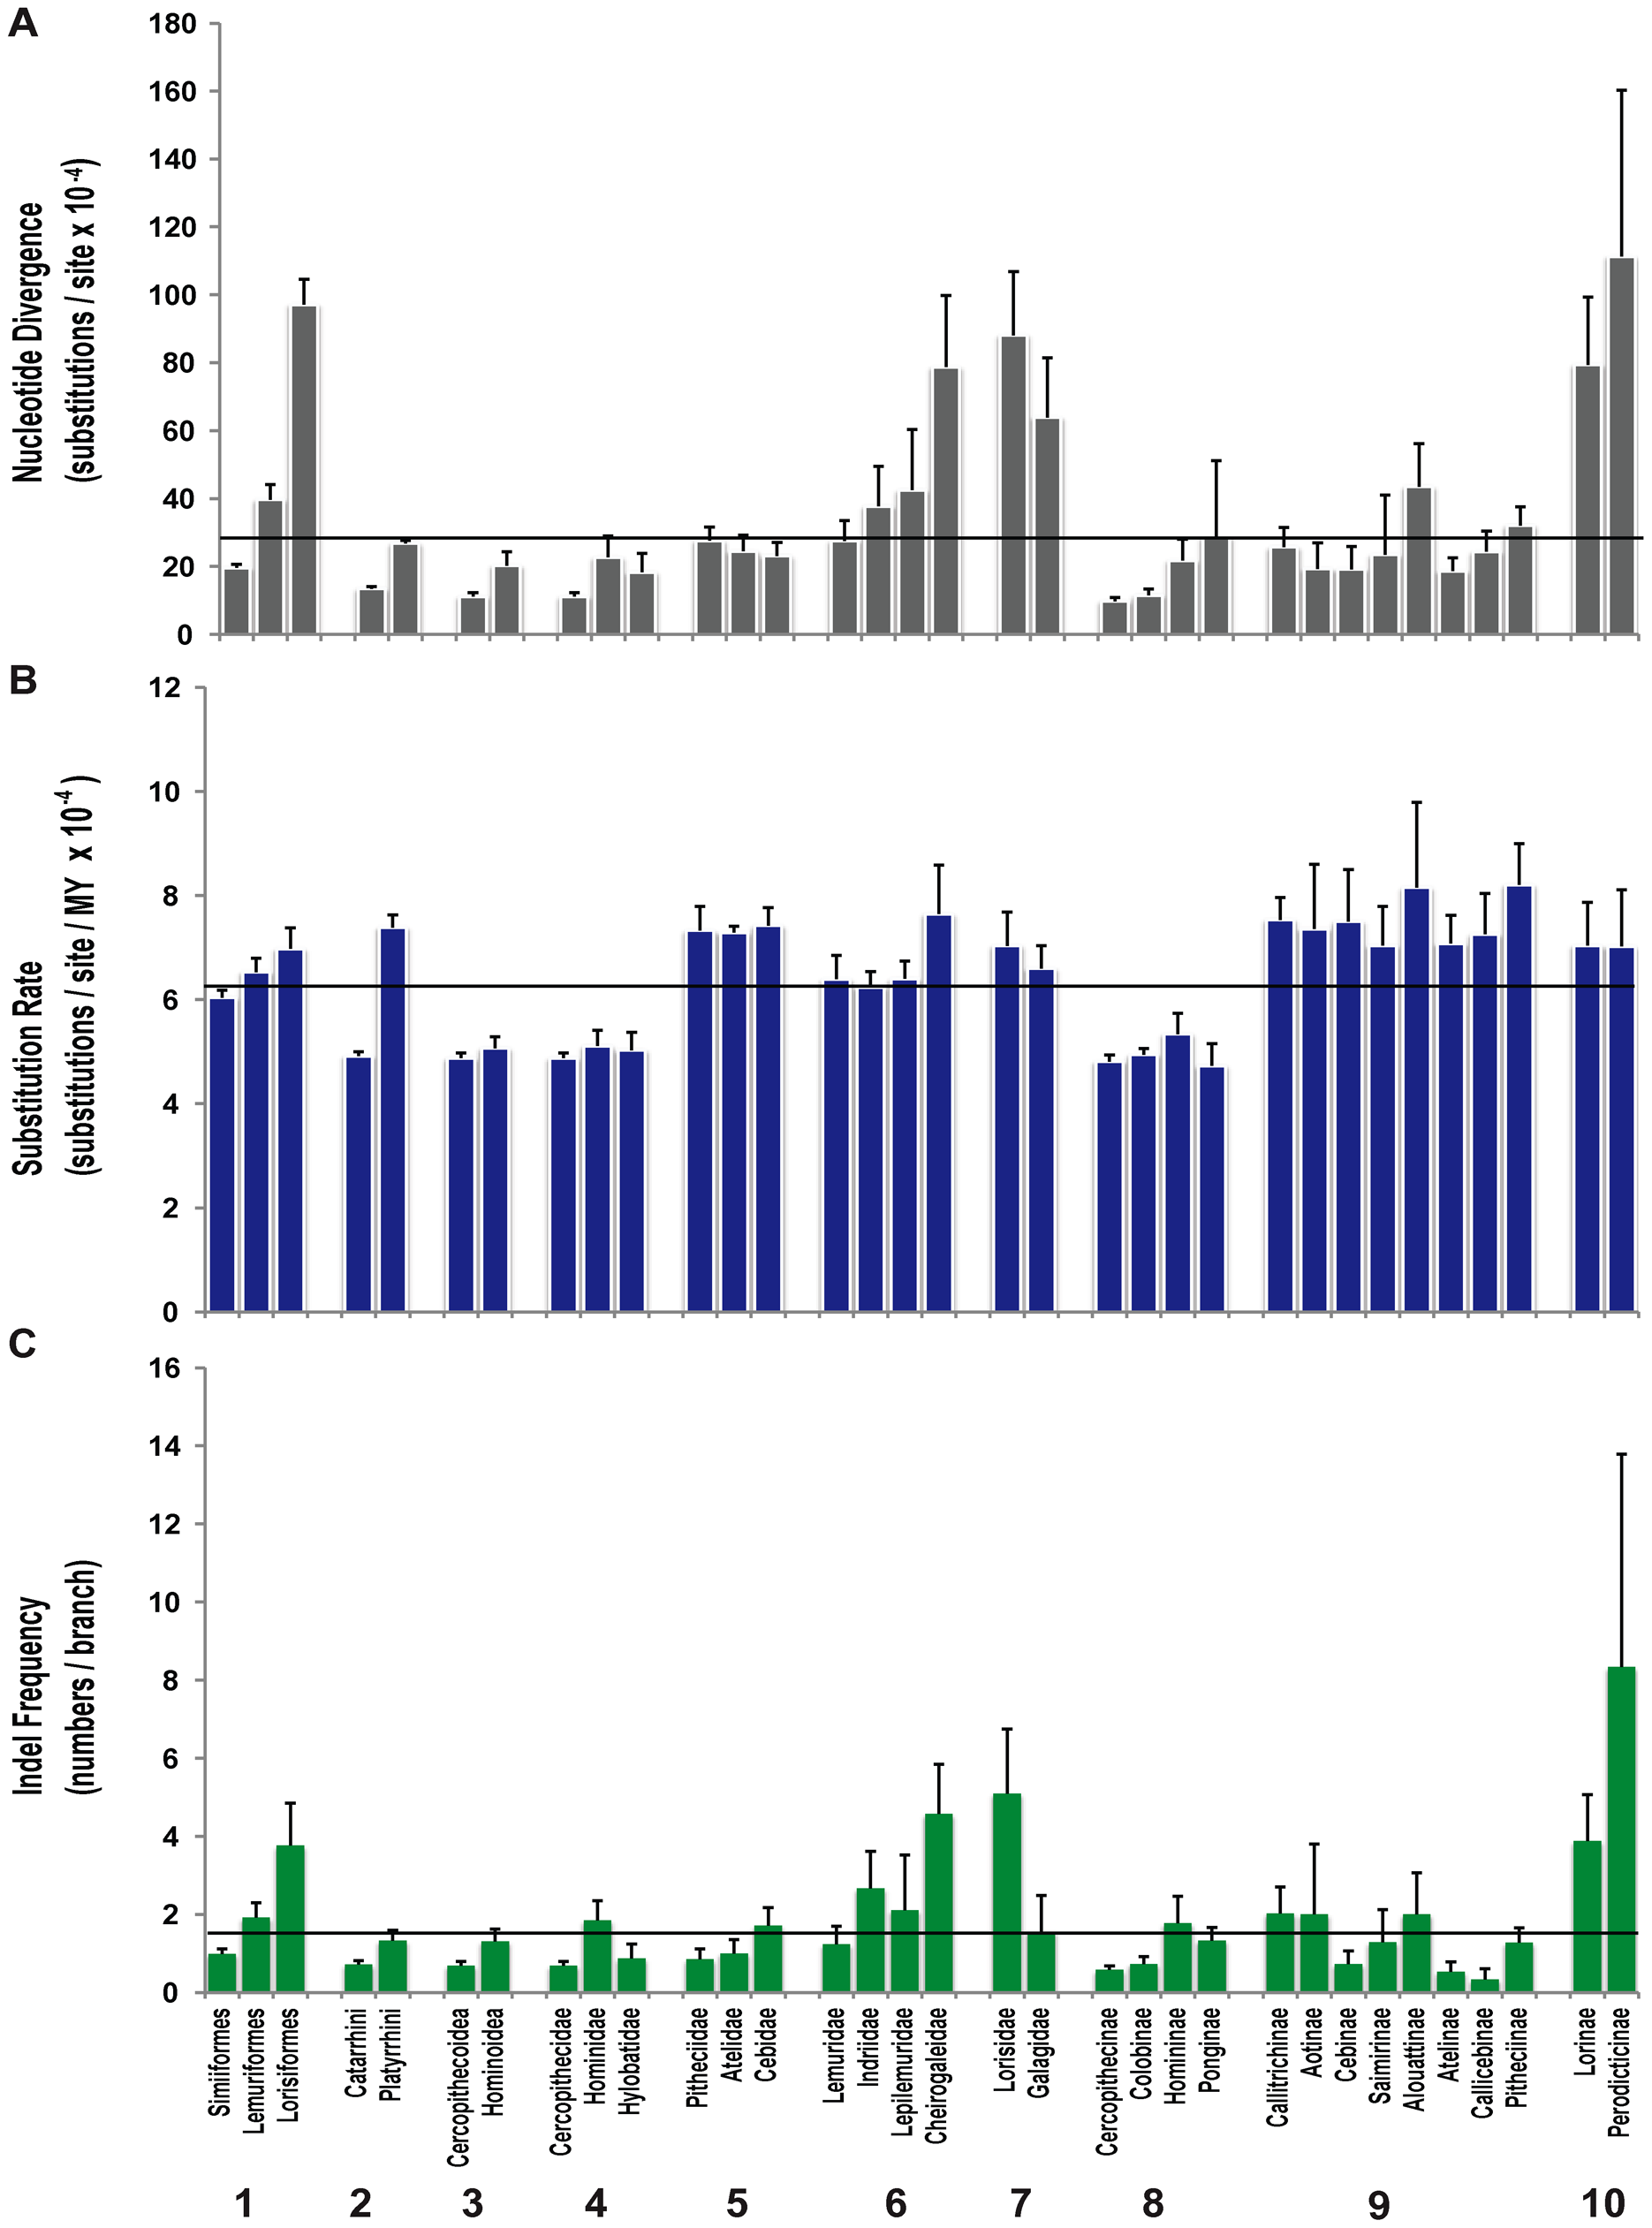 Patterns of nucleotide substitution and indel frequency in different categories of primate taxonomy.